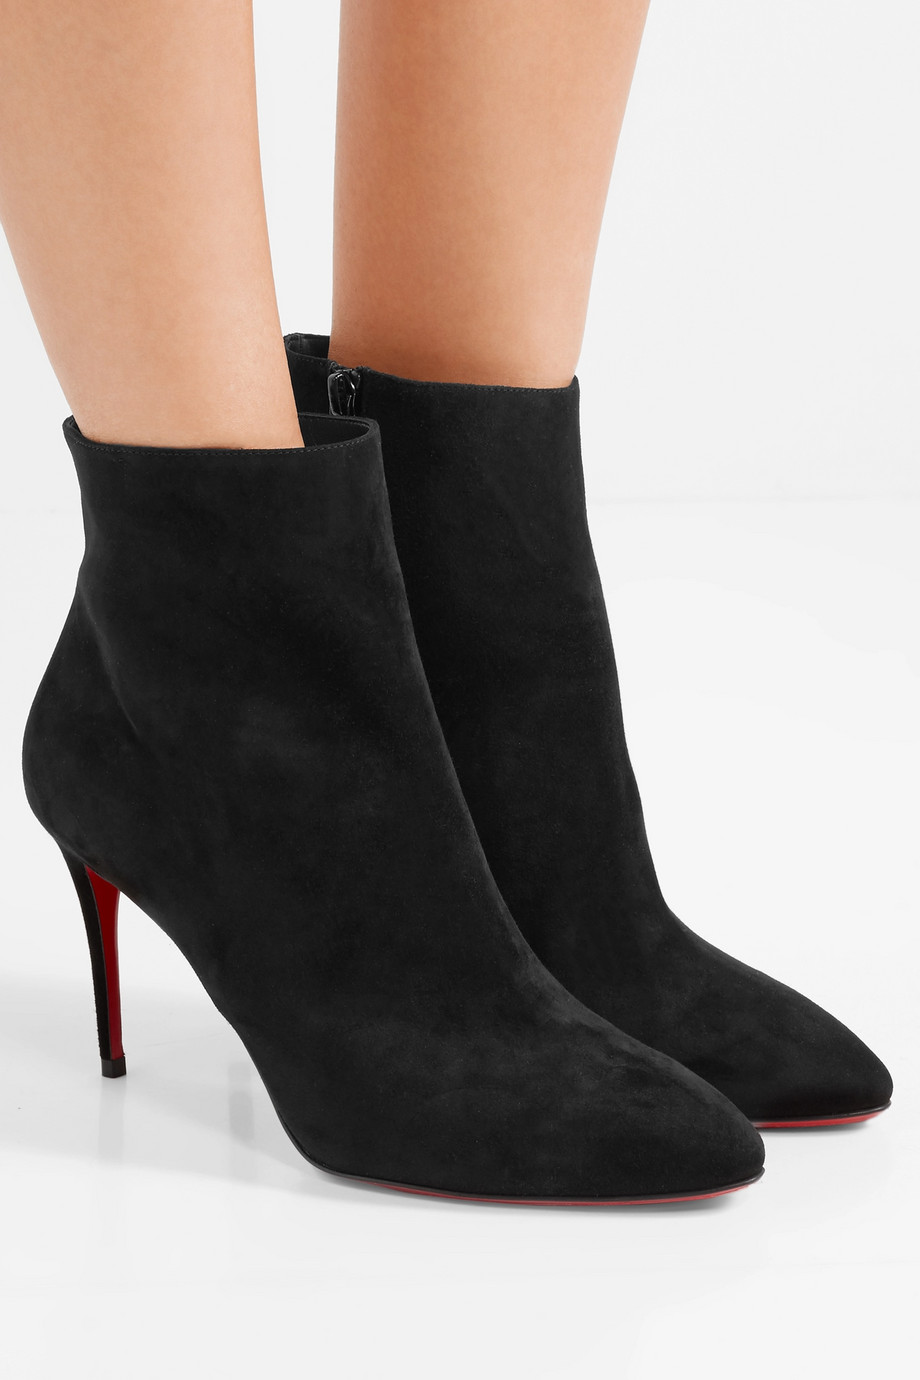 Christian Louboutin Eloise 85 suede ankle boots